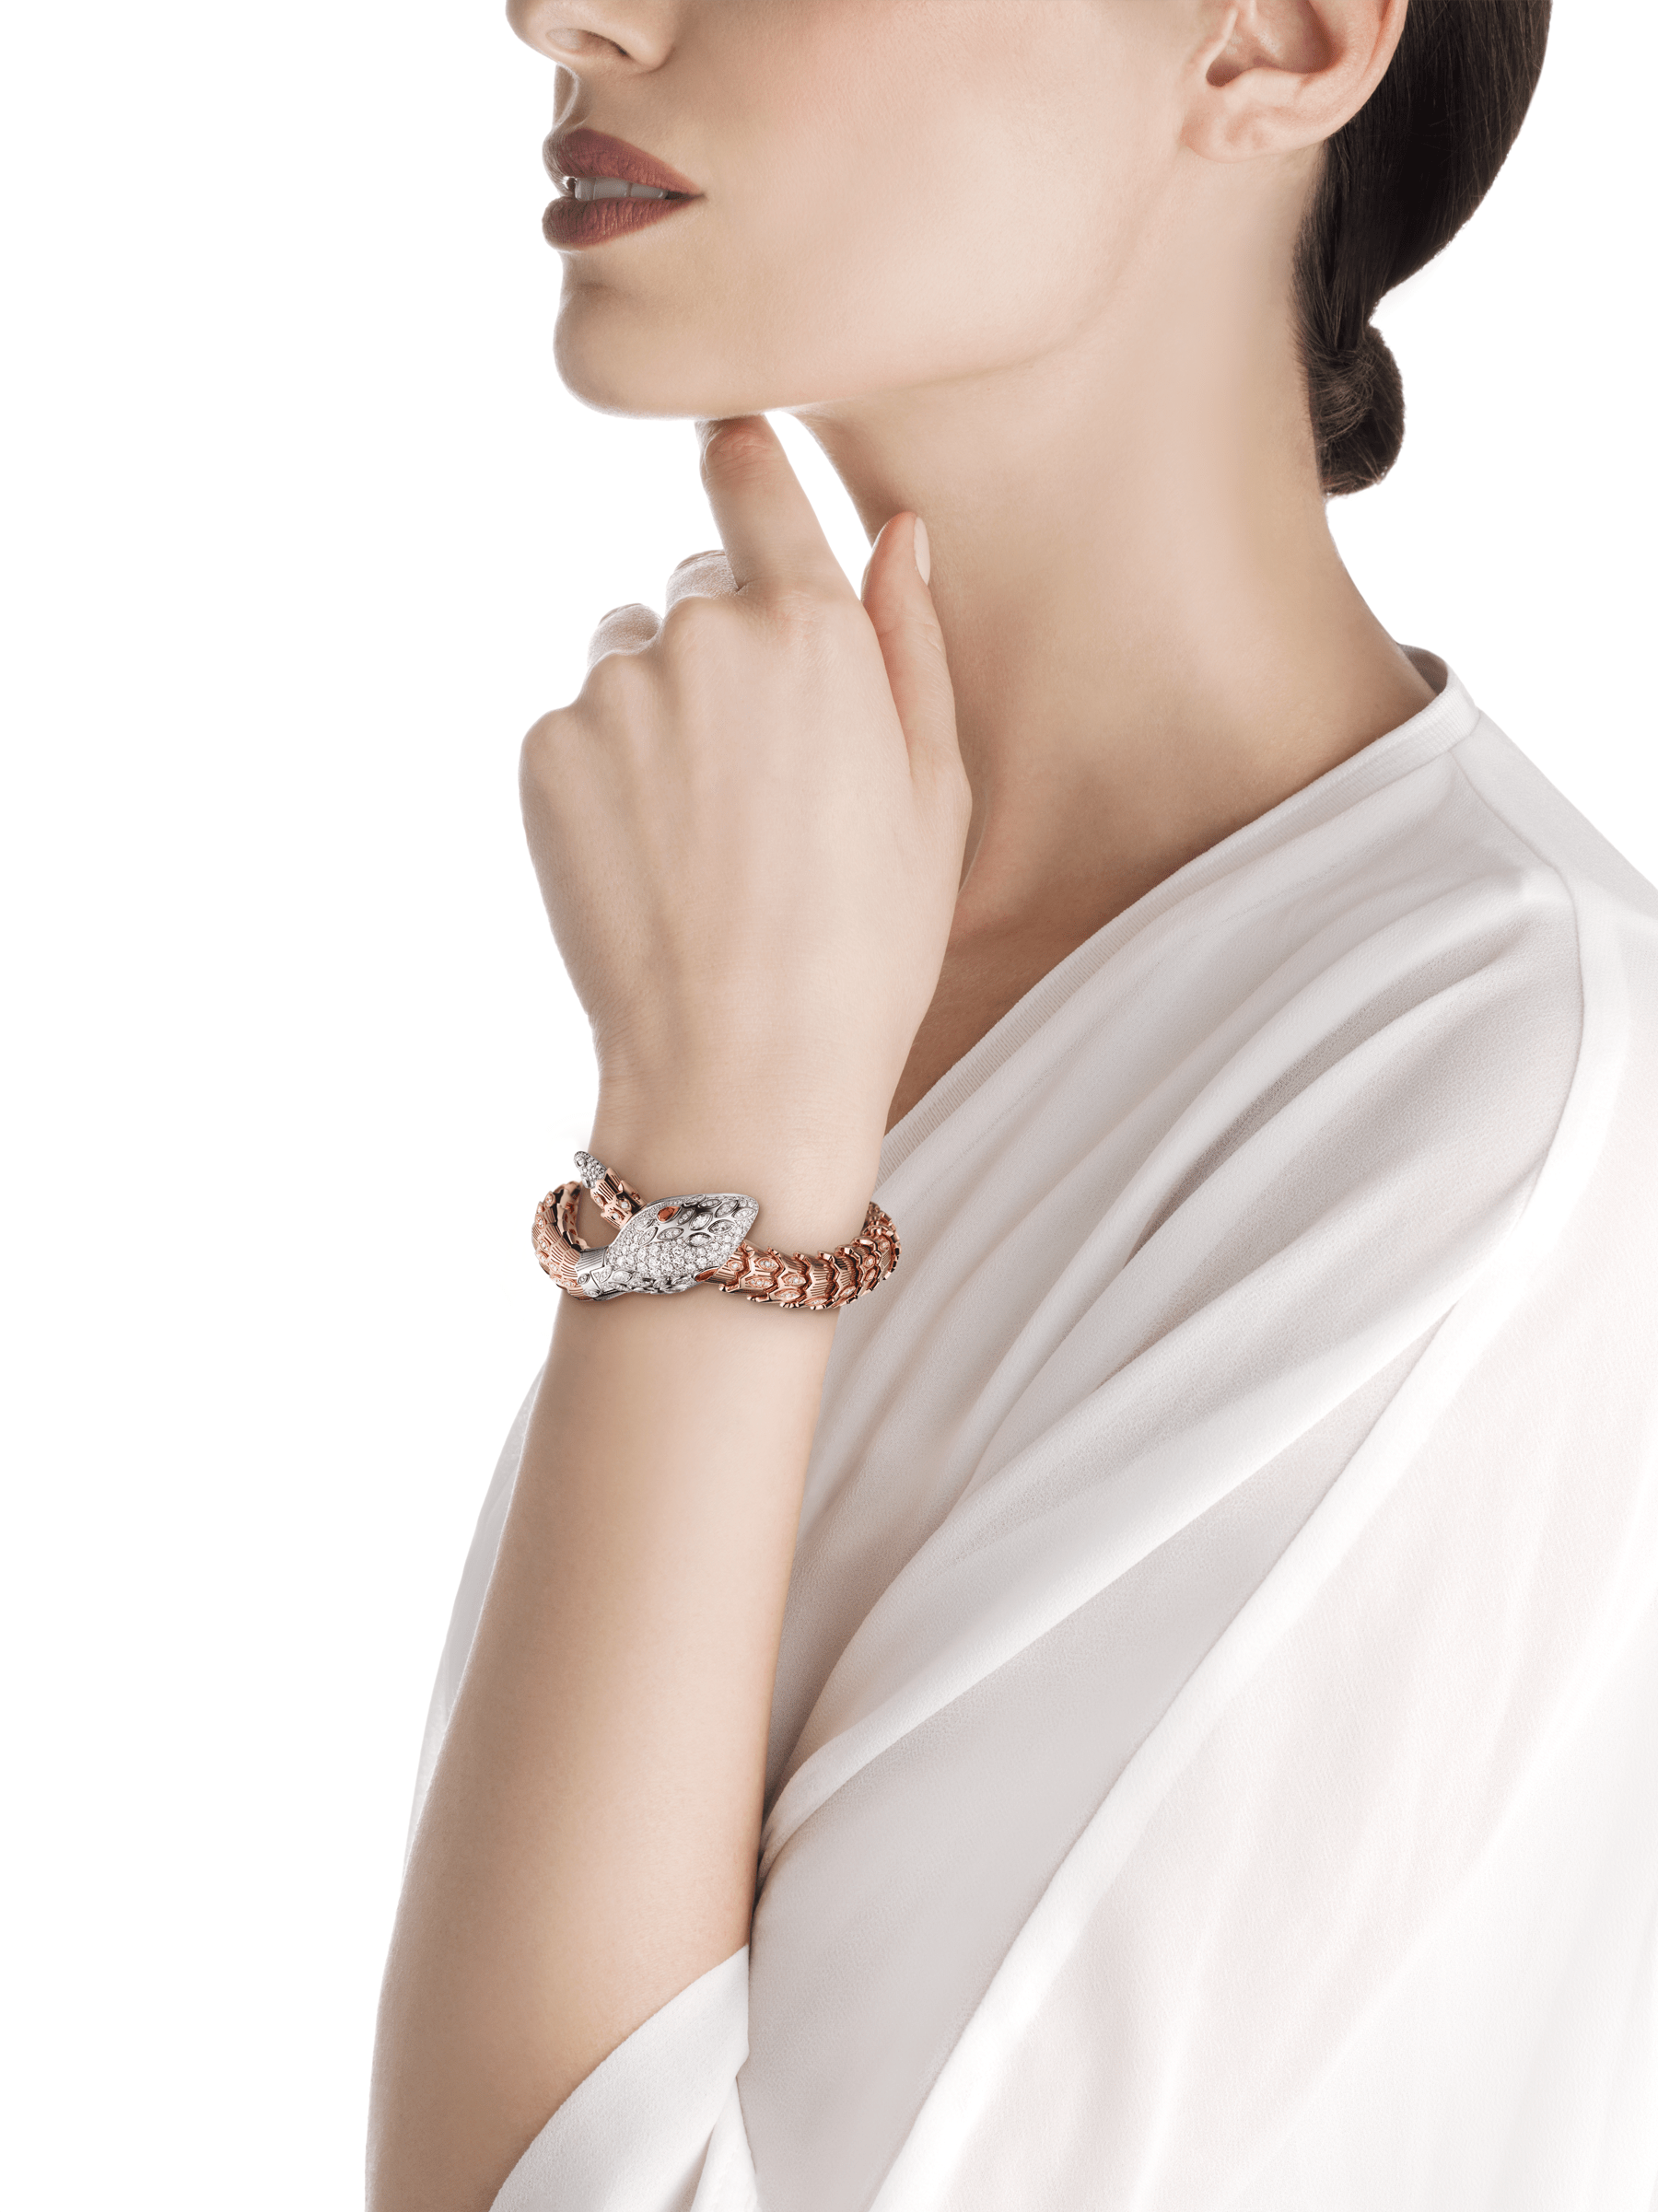 Serpenti Secret Watch with 18 kt white gold head set with brilliant cut and marquise cut diamonds and ruby eyes, 18 kt white gold case, 18 kt white gold dial set with brilliant cut diamonds, single spiral bracelet in 18 kt rose and white gold, set with brilliant cut diamonds. 102239 image 4